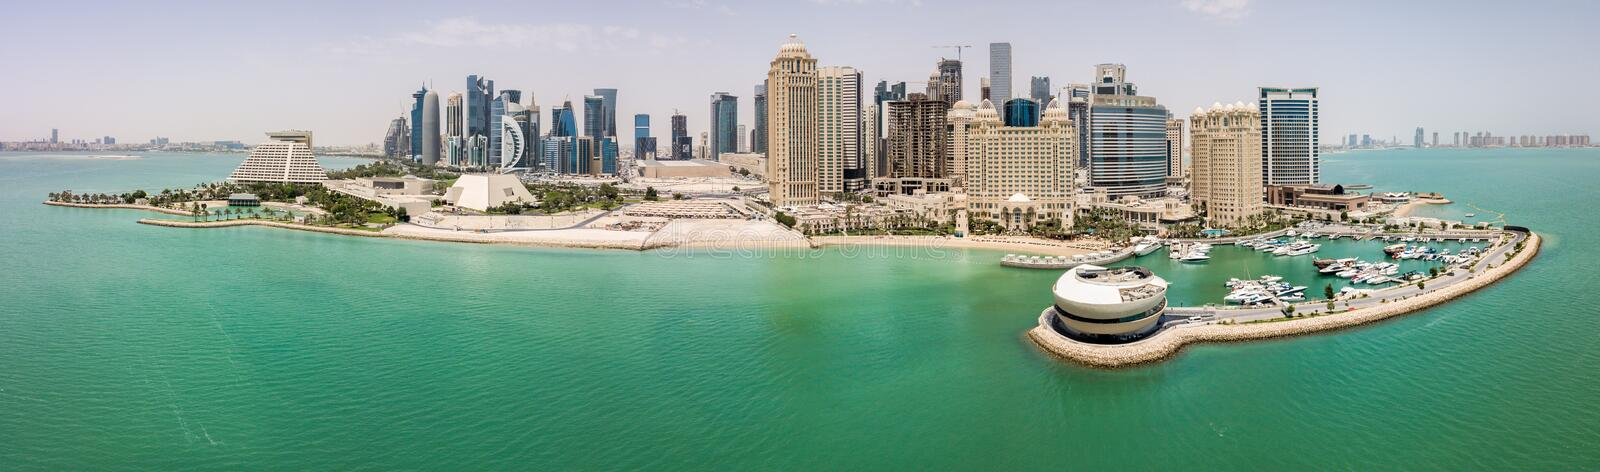 The skyline of Doha, Qatar, Persian Gulf, Middle East. Modern rich middle eastern city of skyscrapers, aerial view. stock photo